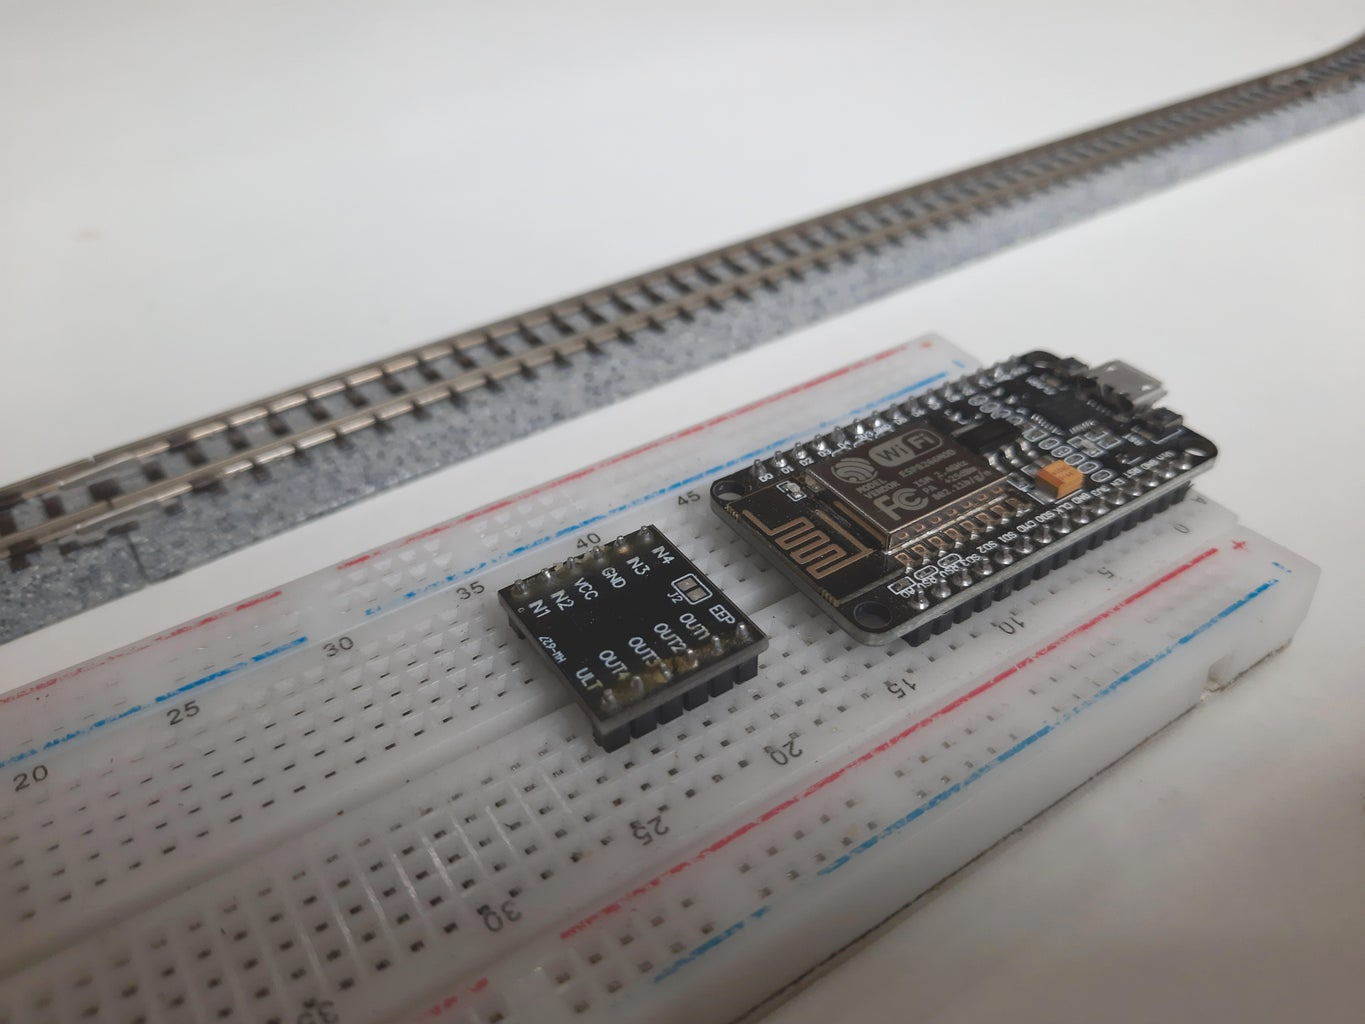 Put the Microcontroller and Motor Driver on the Breadboard